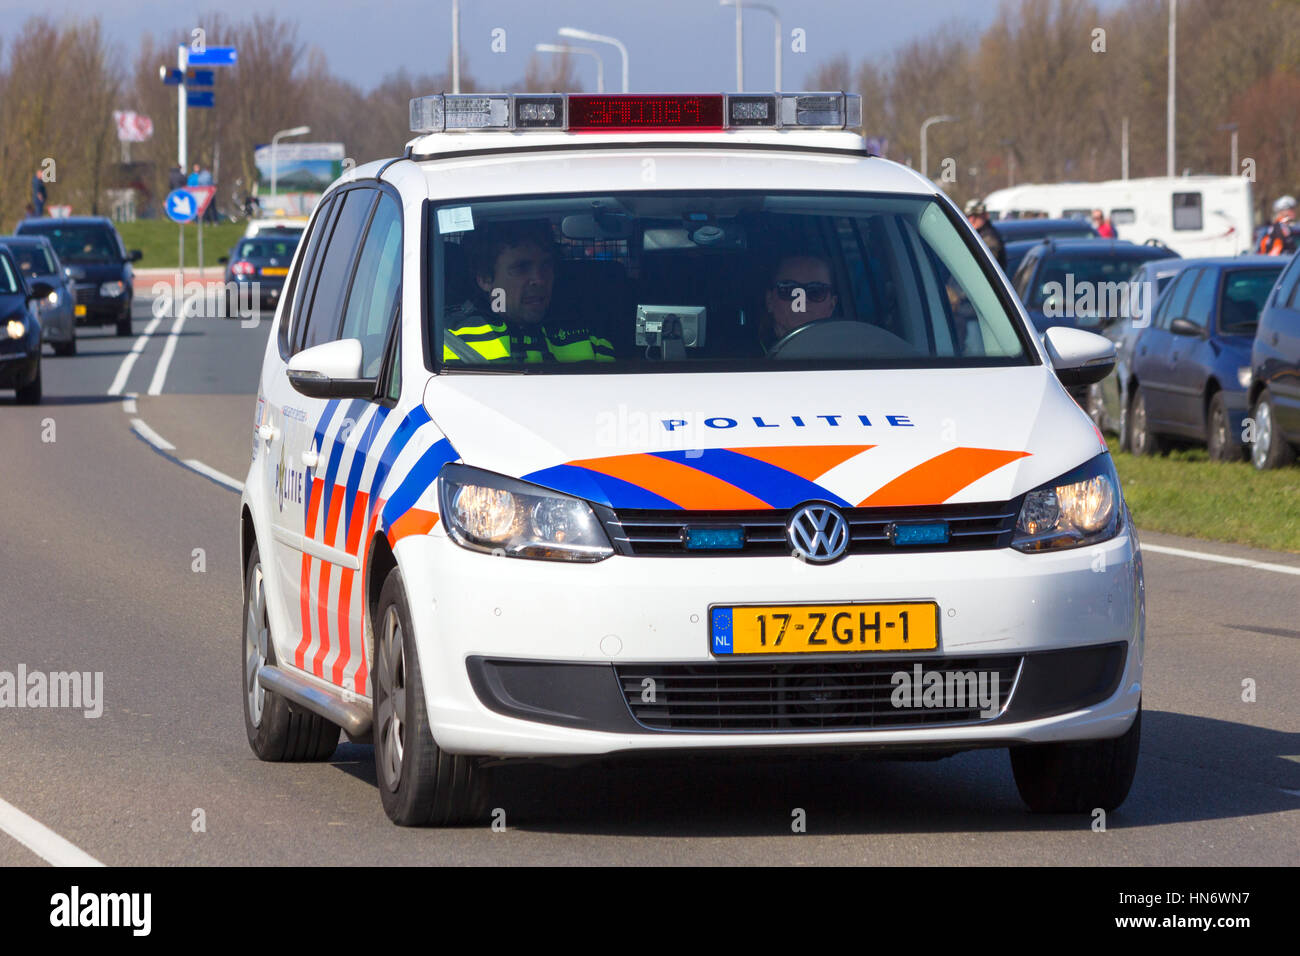 LEEUWARDEN, NETHERLANDS - 15 APRIL, 2015: A Dutch Volkswagen Touran on patrol. The police are the largest corporate - Stock Image